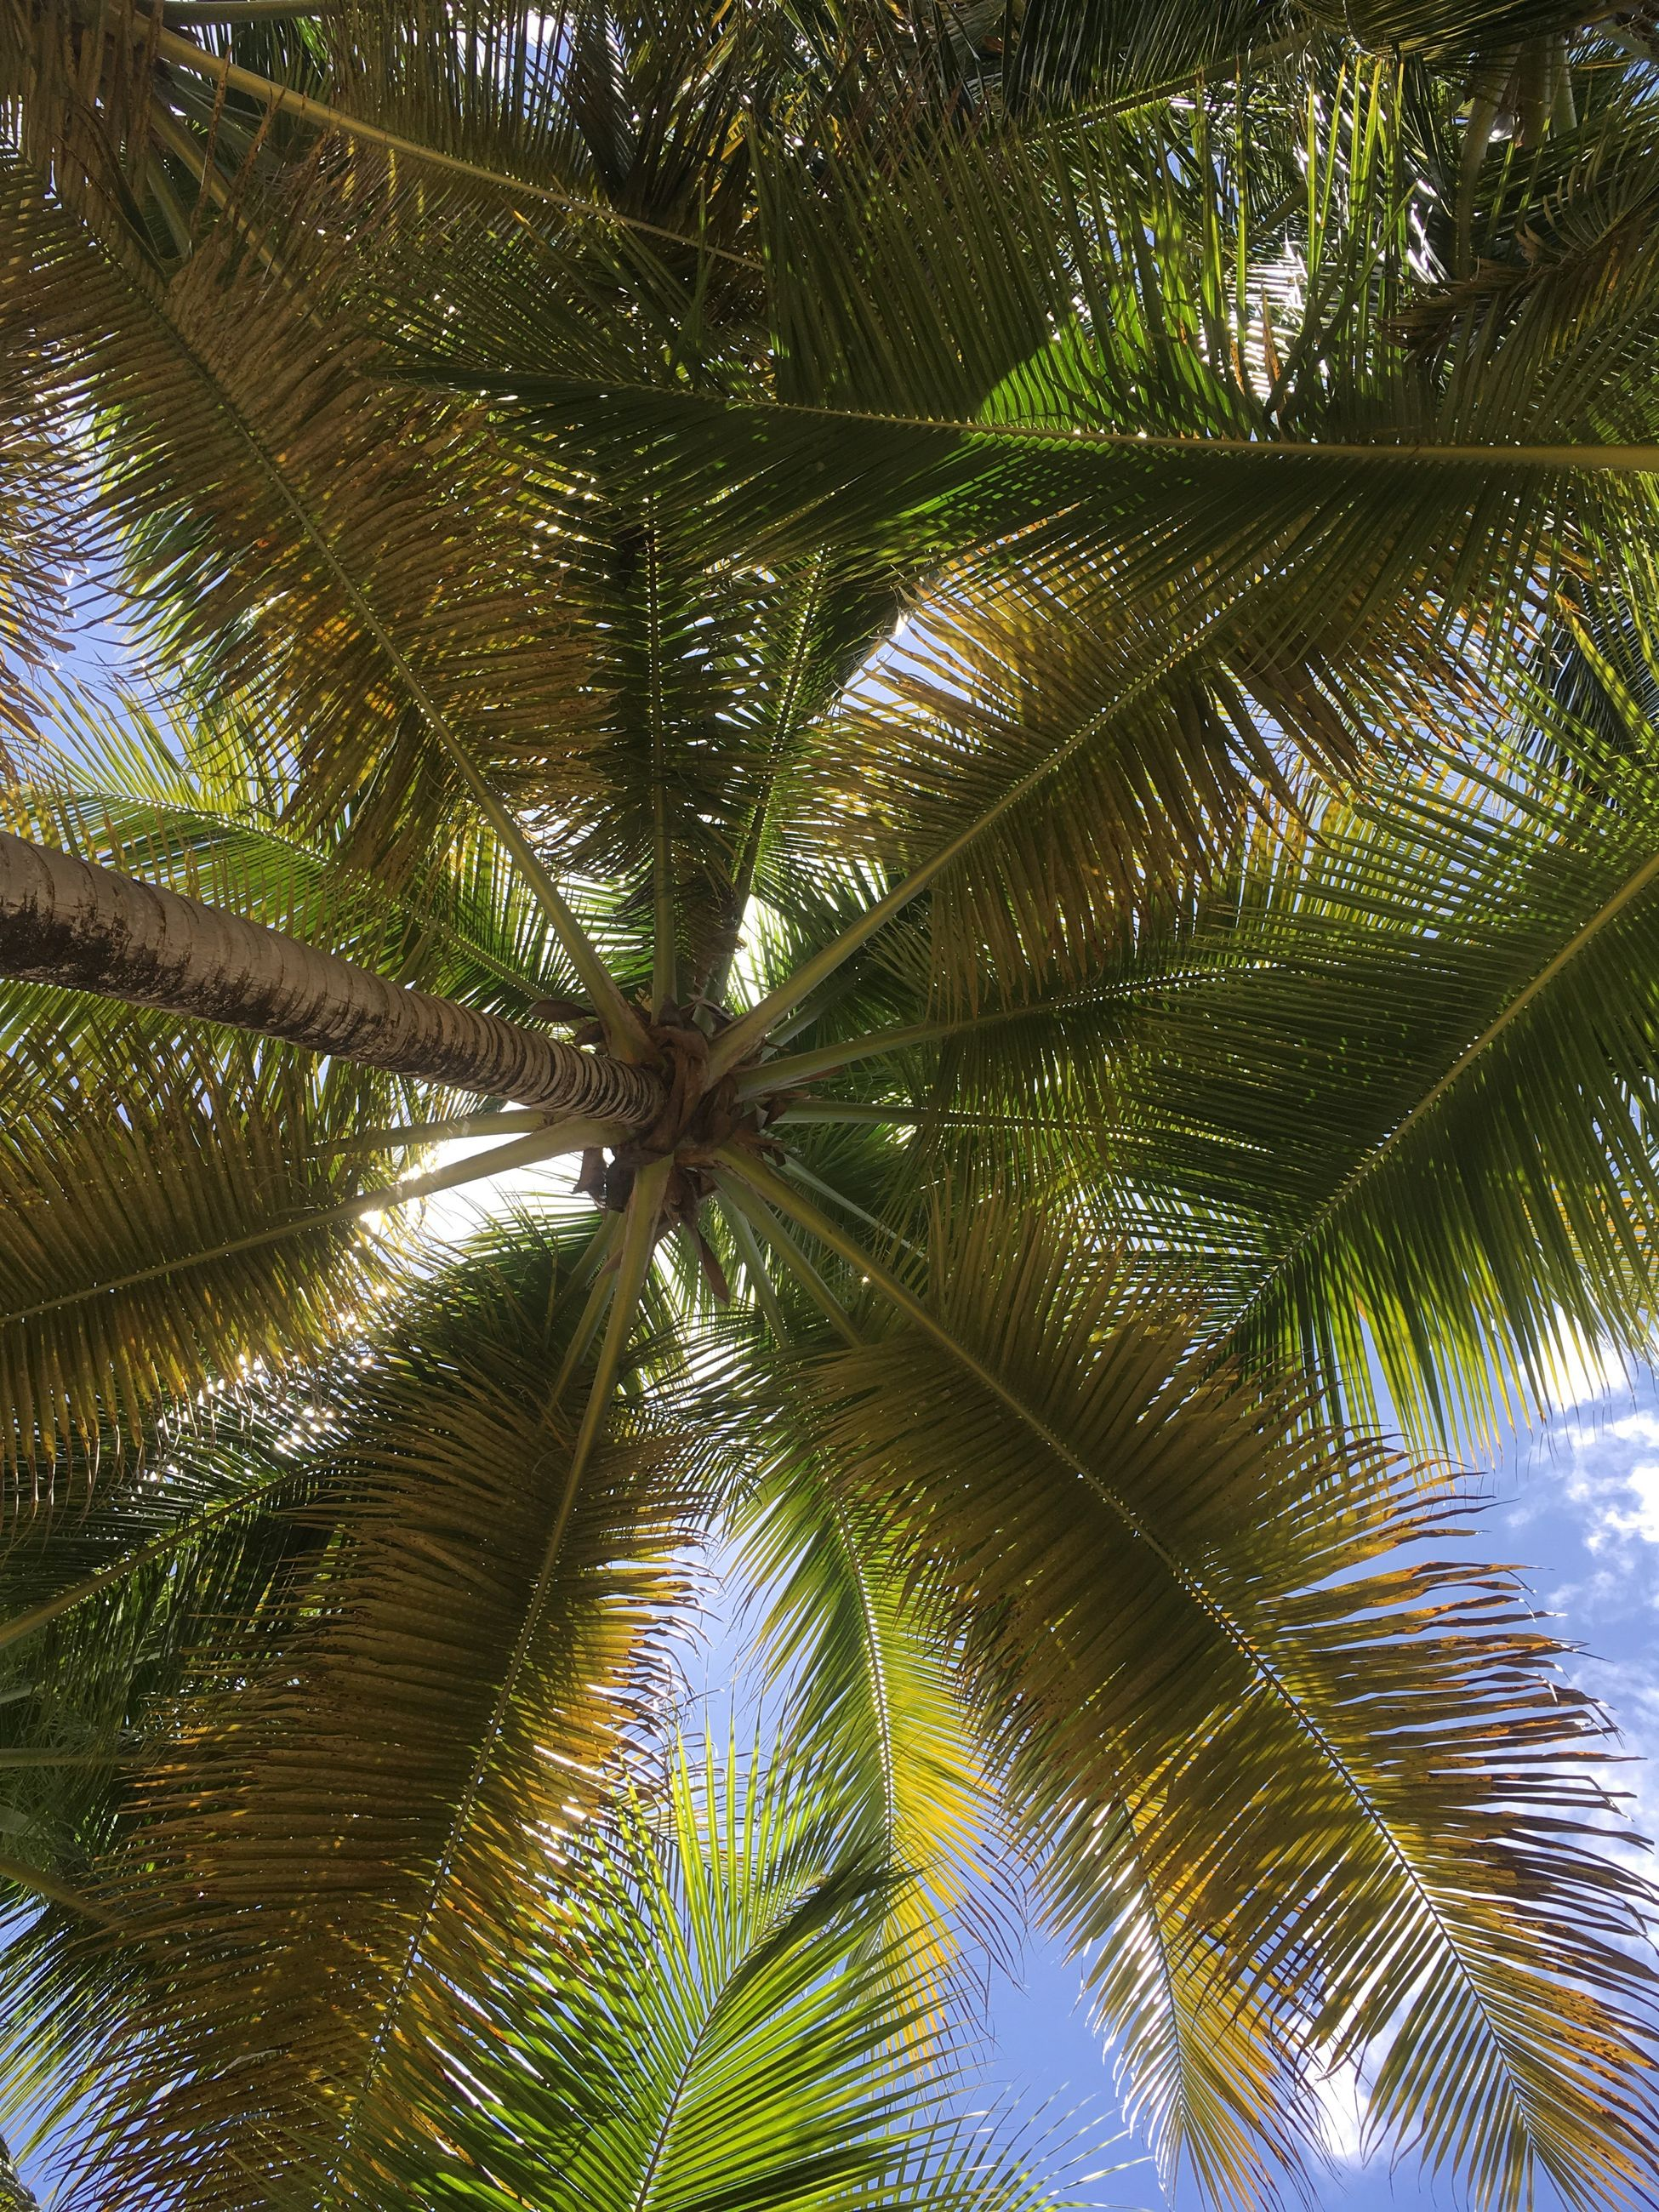 low angle view, palm tree, growth, tree, tree trunk, leaf, scenics, tranquility, tranquil scene, branch, palm leaf, beauty in nature, green color, nature, coconut palm tree, sky, tall - high, idyllic, directly below, clear sky, outdoors, tree canopy, day, tall, tropical tree, tropical climate, full frame, palm frond, frond, green, non-urban scene, summer, lush foliage, no people, lush